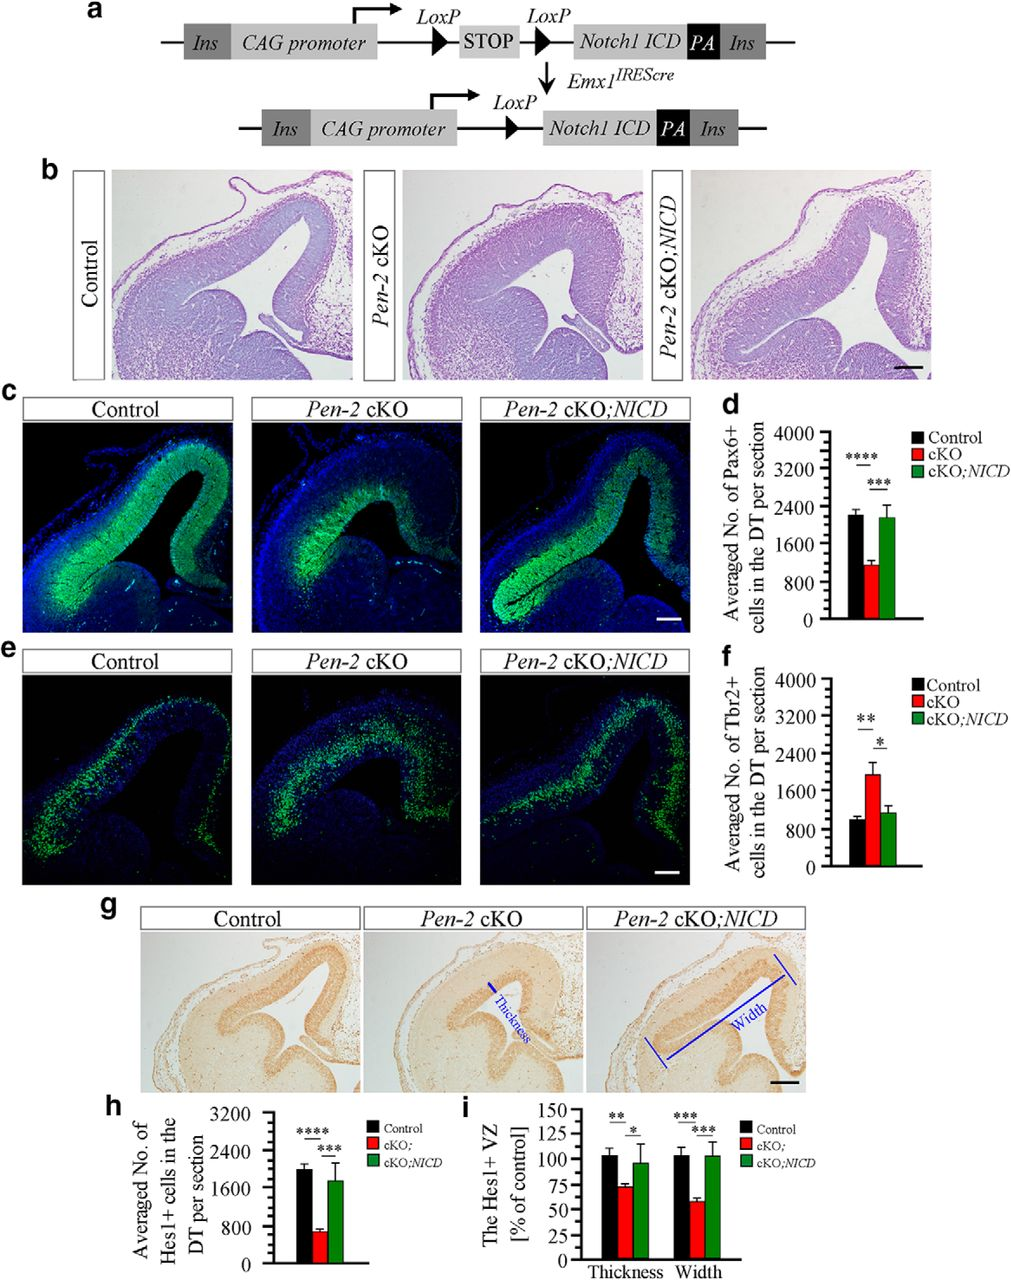 Conditional Inactivation of Pen-2 in the Developing Neocortex Leads